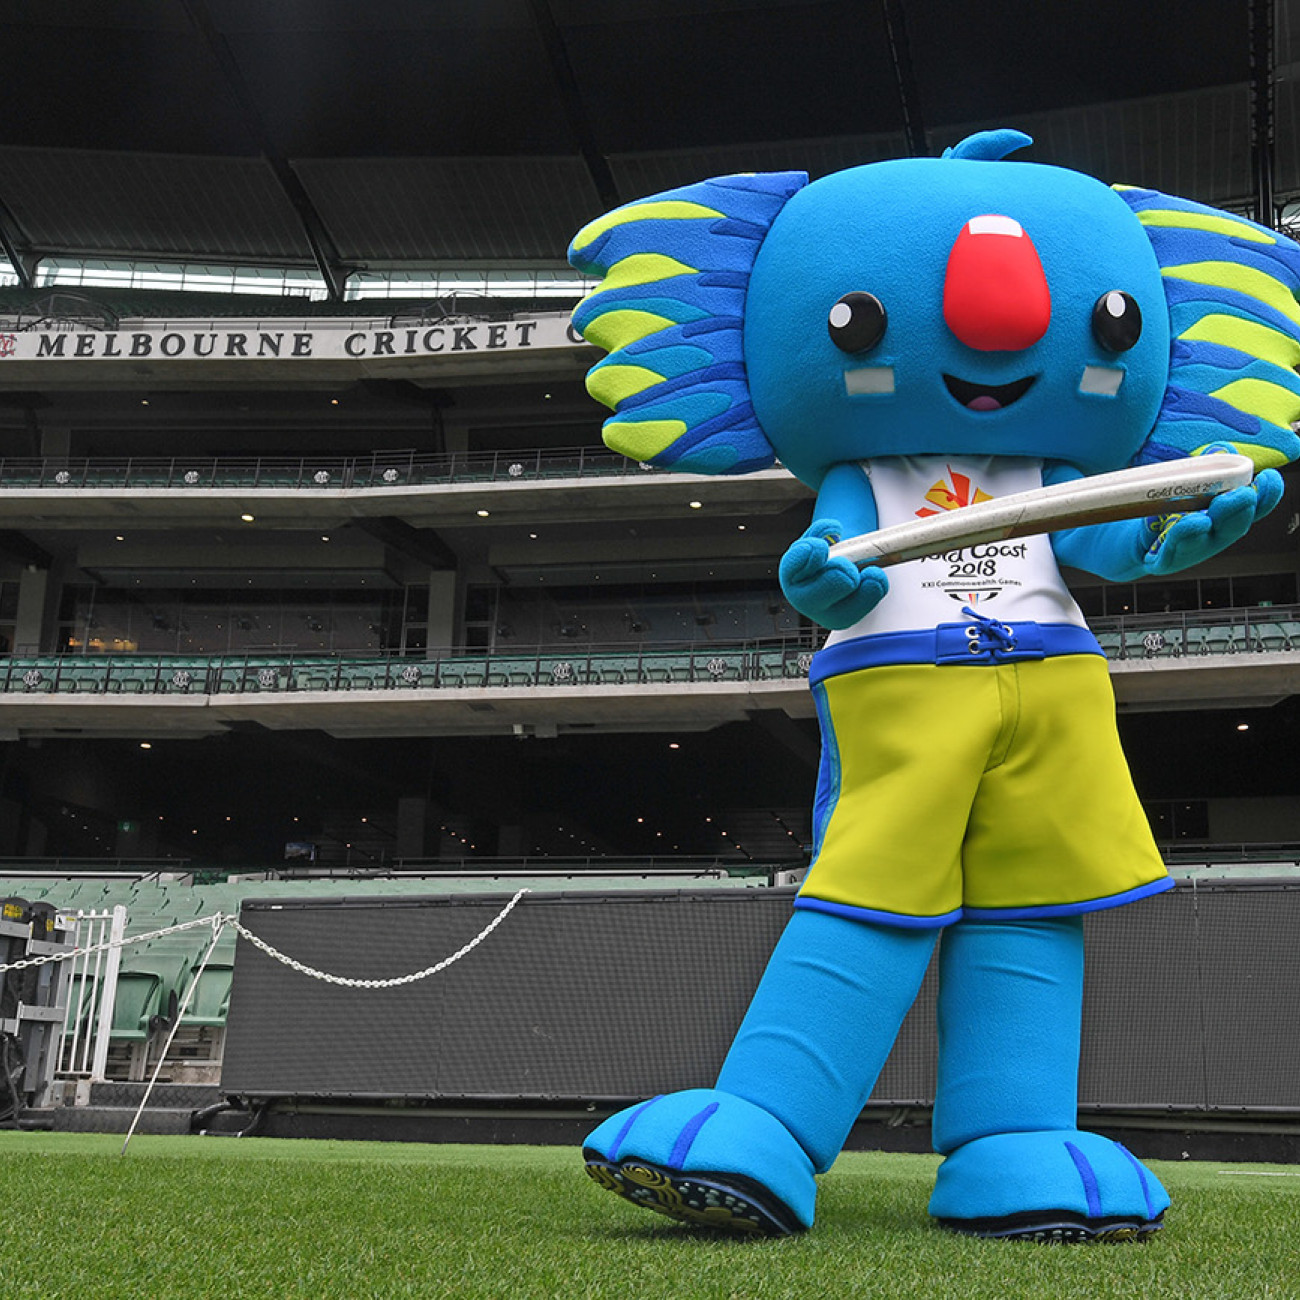 GC2018 mascot Borobi with the Queen's Baton at the MCG